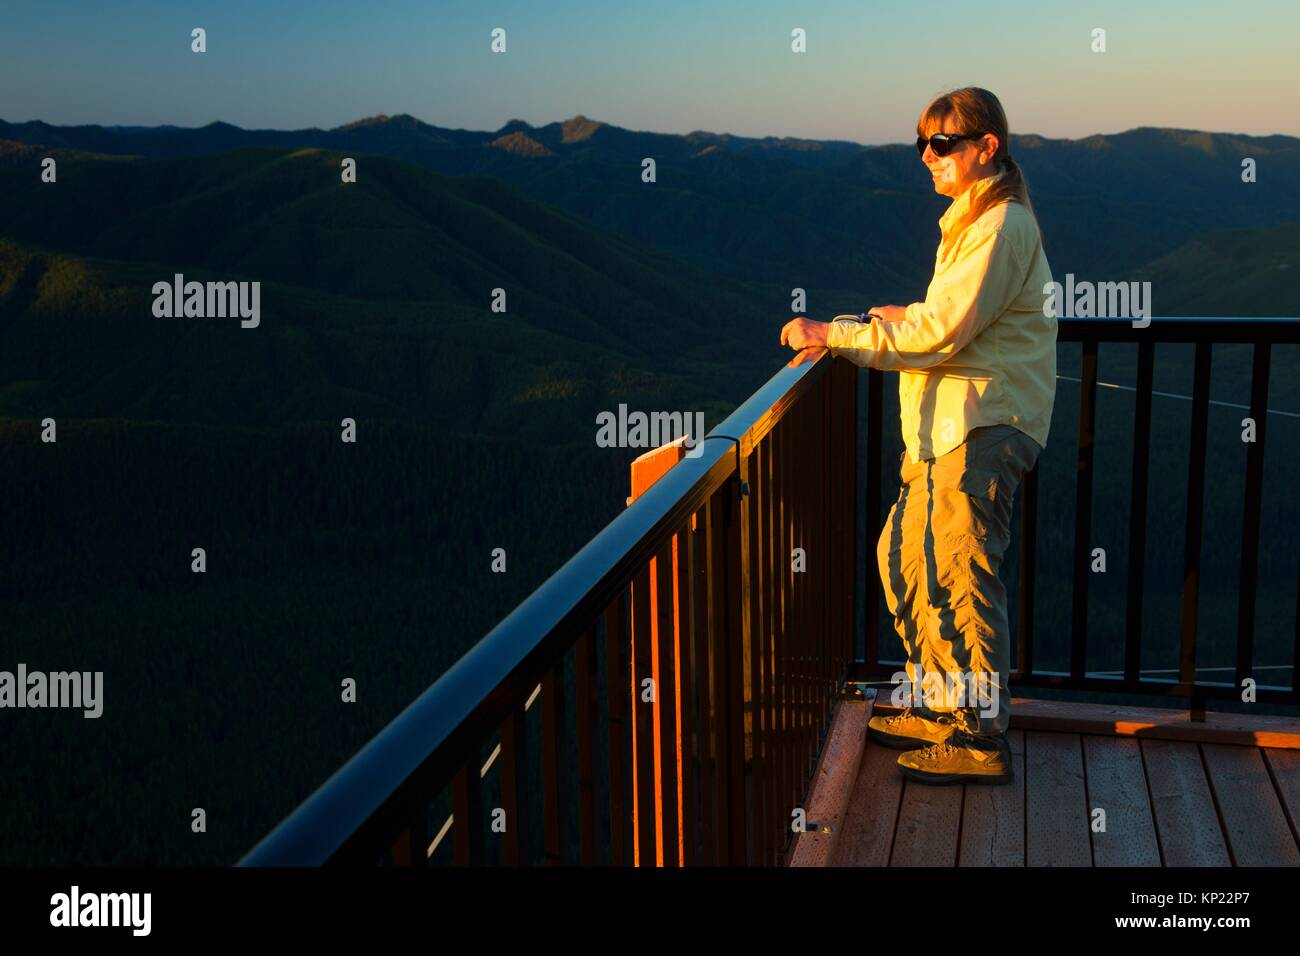 Kloshe Nanitch Lookout observation deck, Olympic National Forest, Washington. - Stock Image